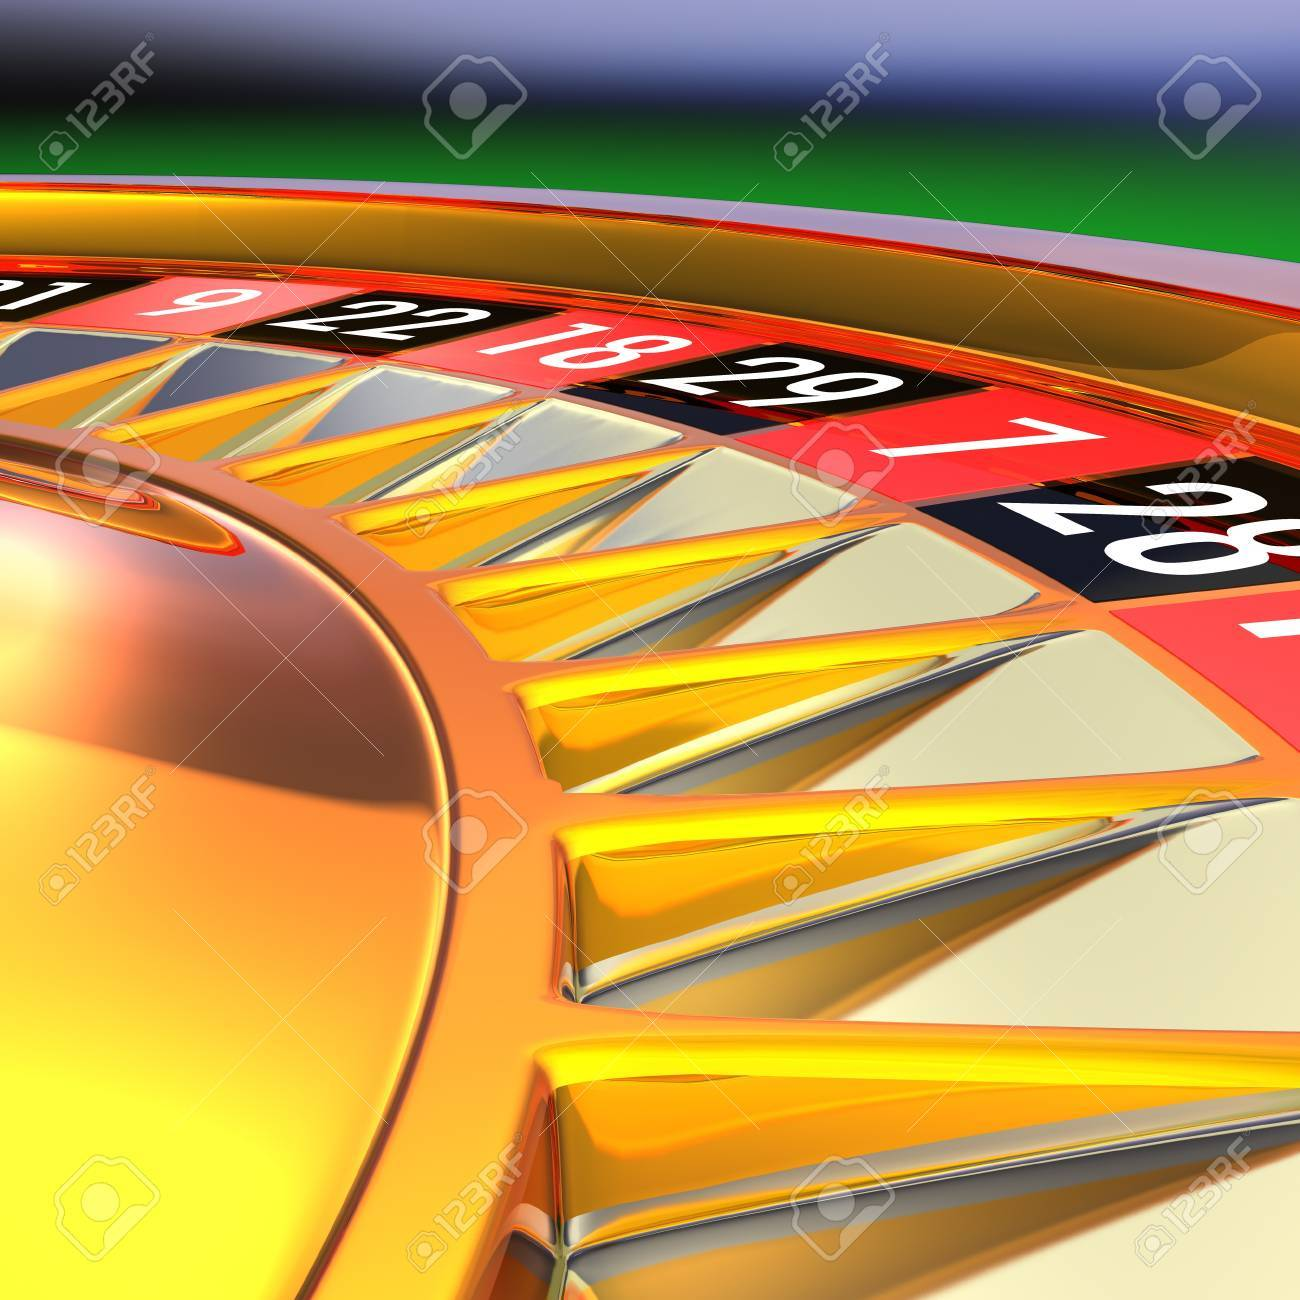 Golden roulette detail 3D rendering illustration. Photo - Realistic rendering. Stock Photo - 18362880